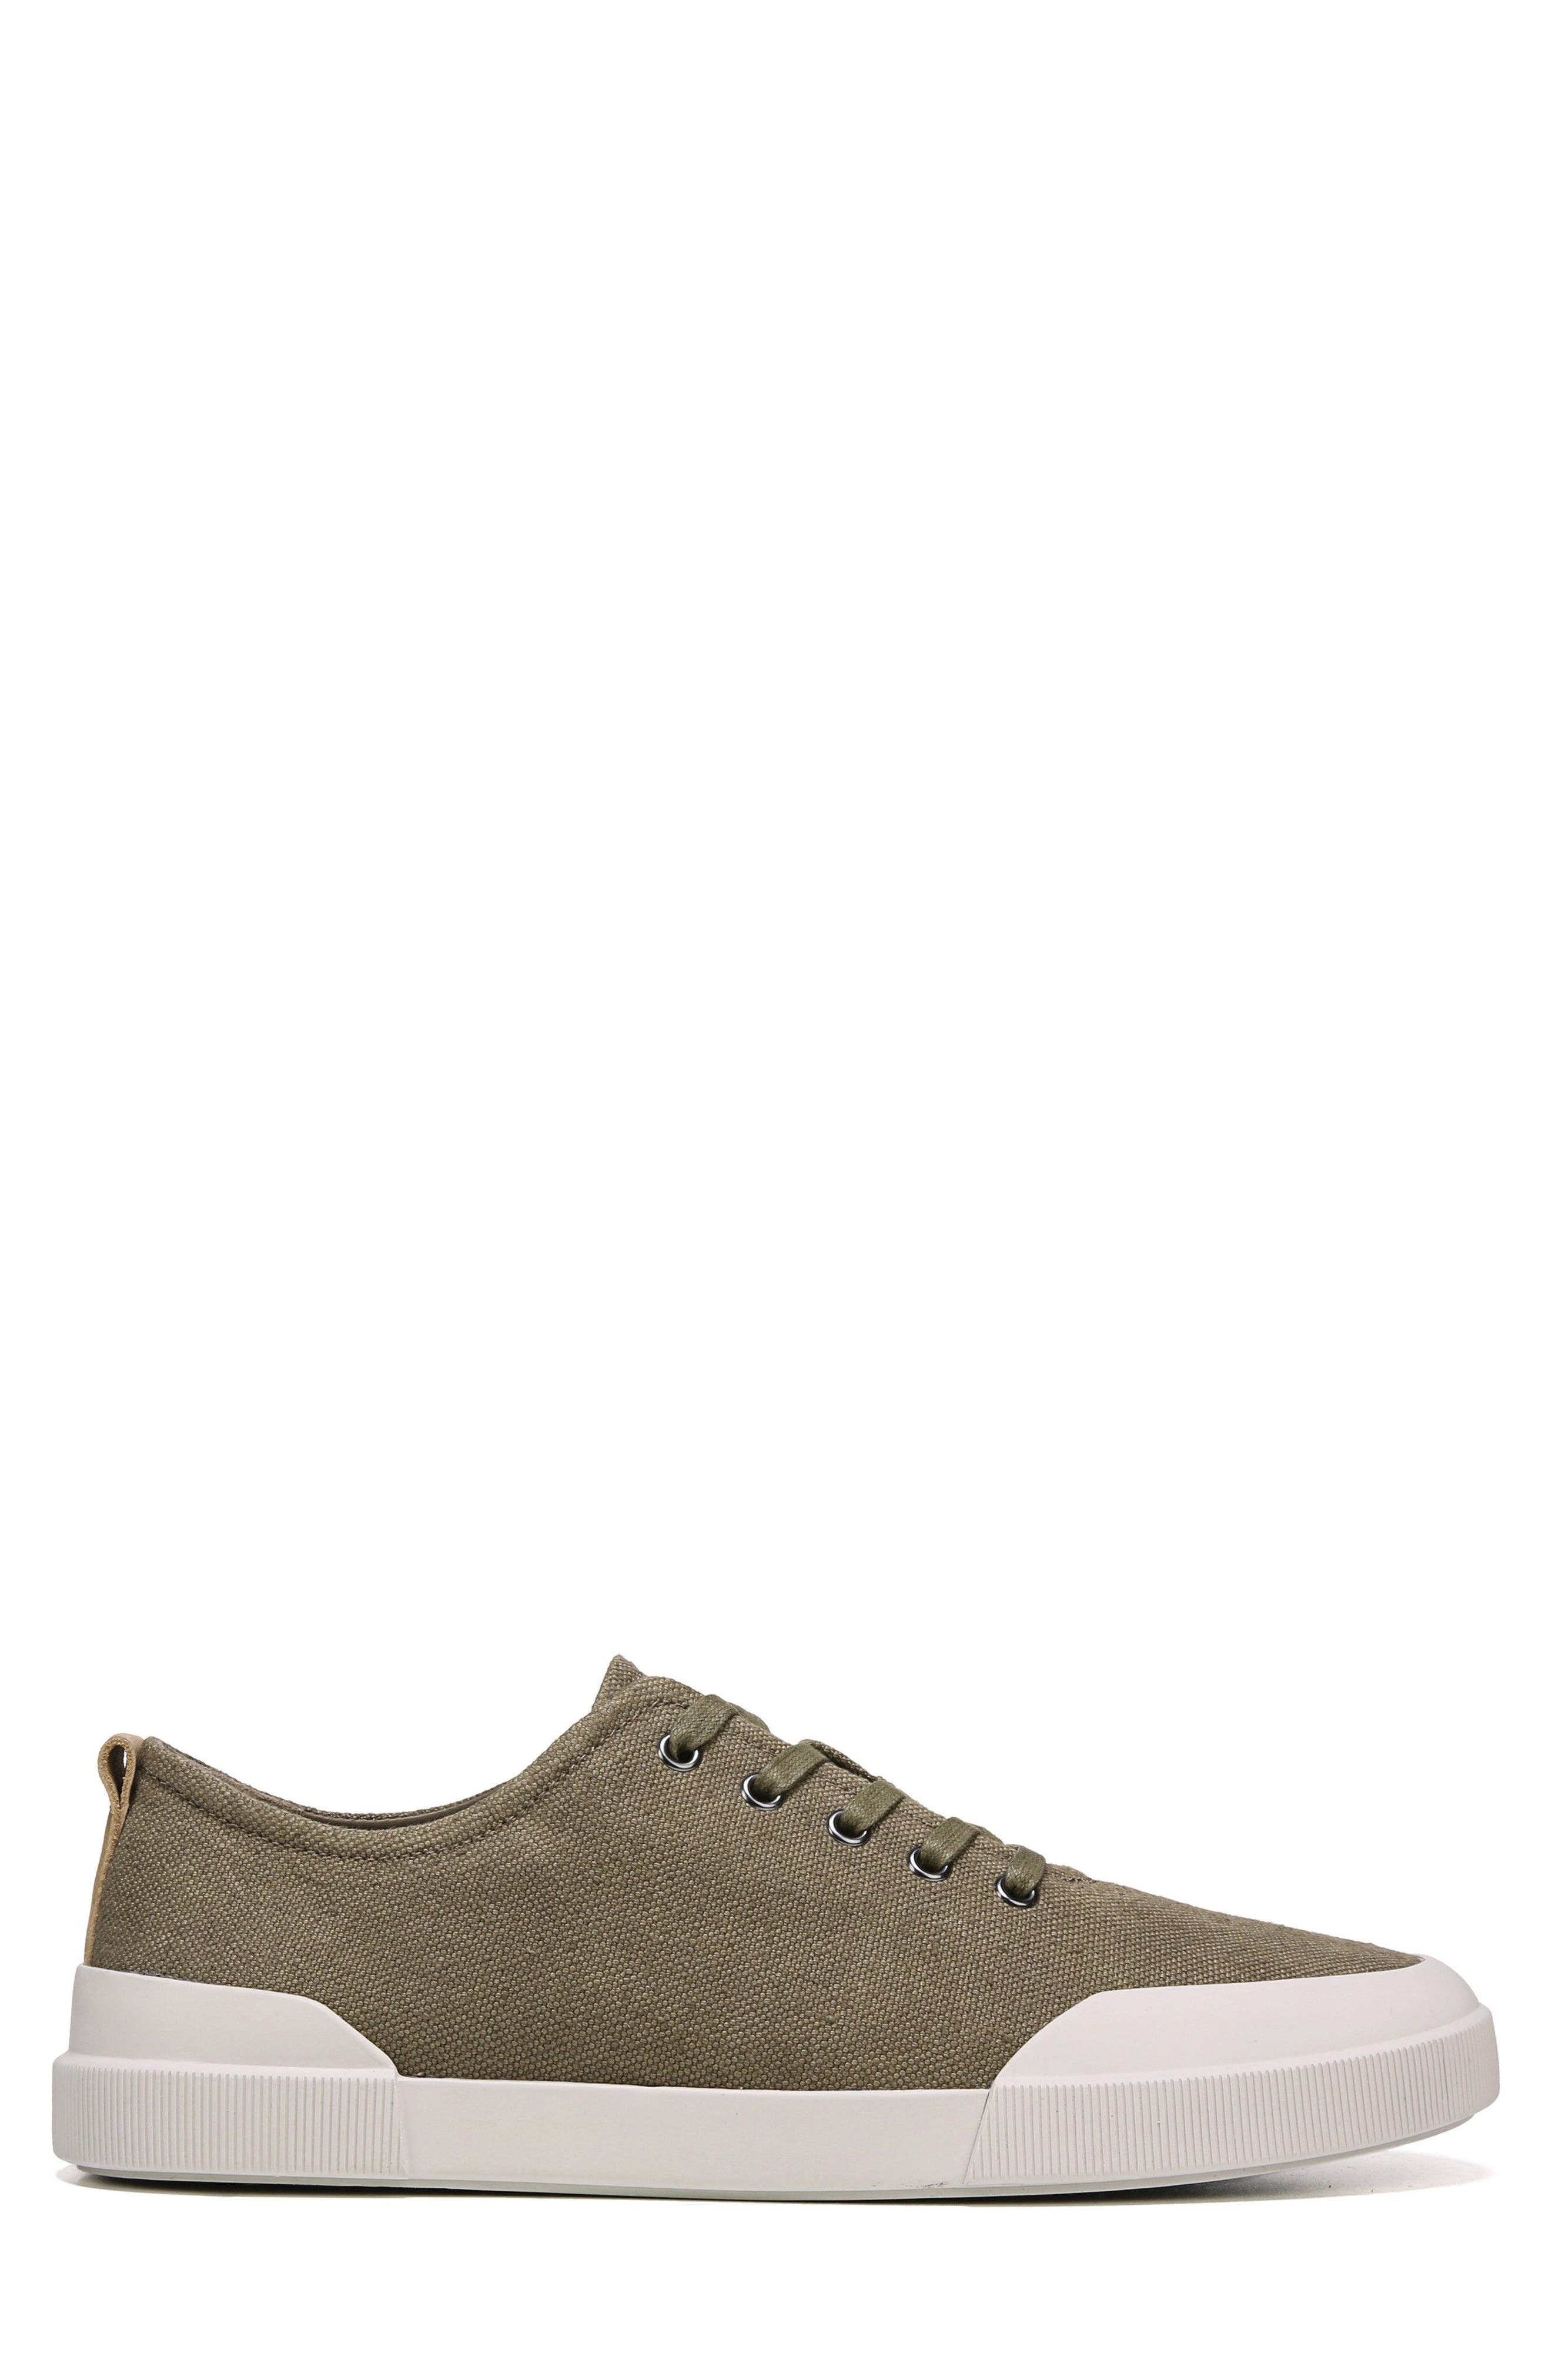 Victor Low Top Sneaker,                             Alternate thumbnail 3, color,                             Flint/ Cuoio